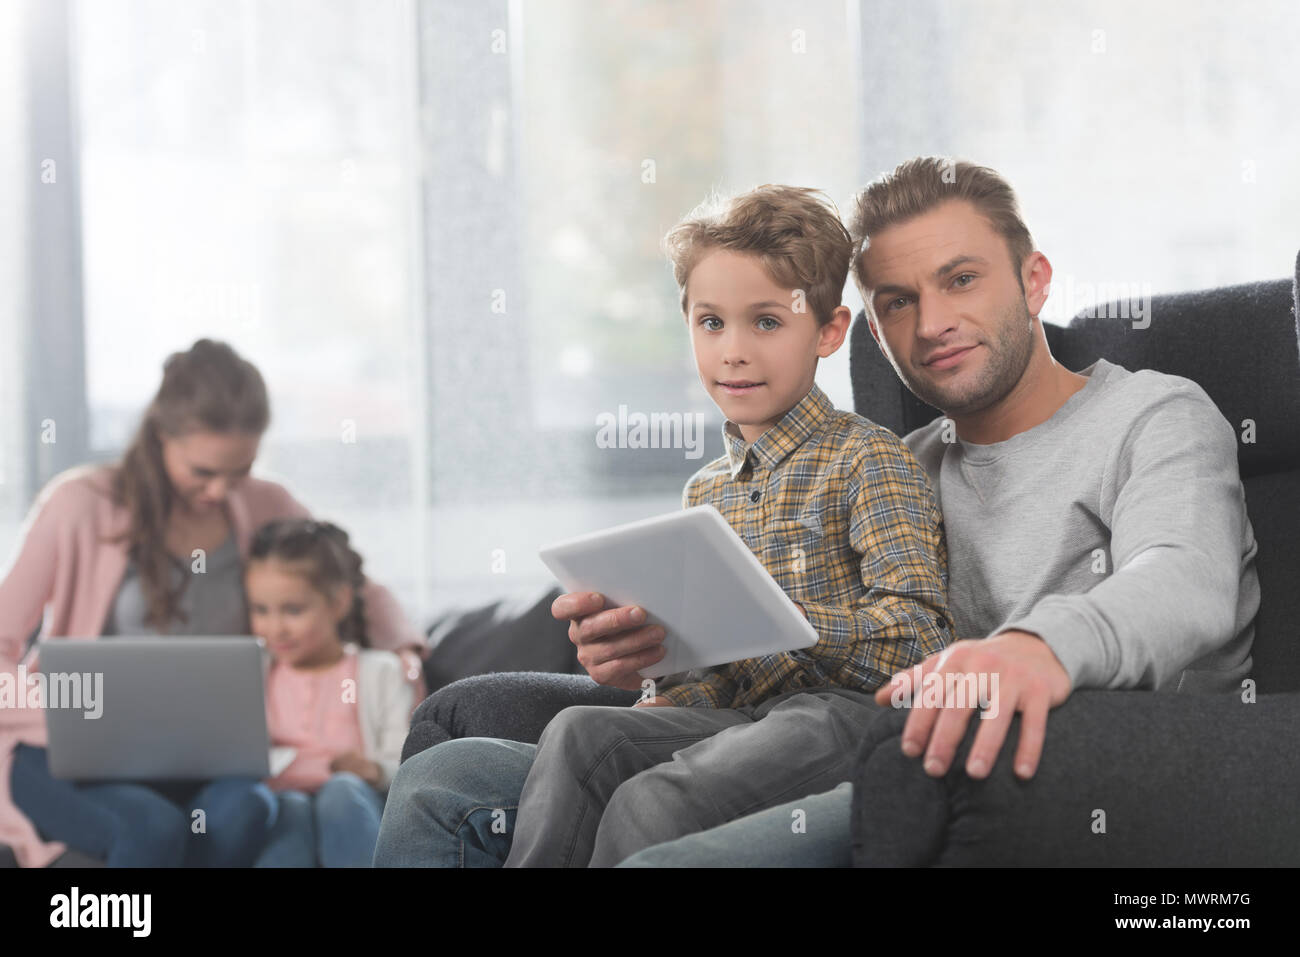 Young Boy Sitting In Lap Of His Dad While He Is Holding A Digital